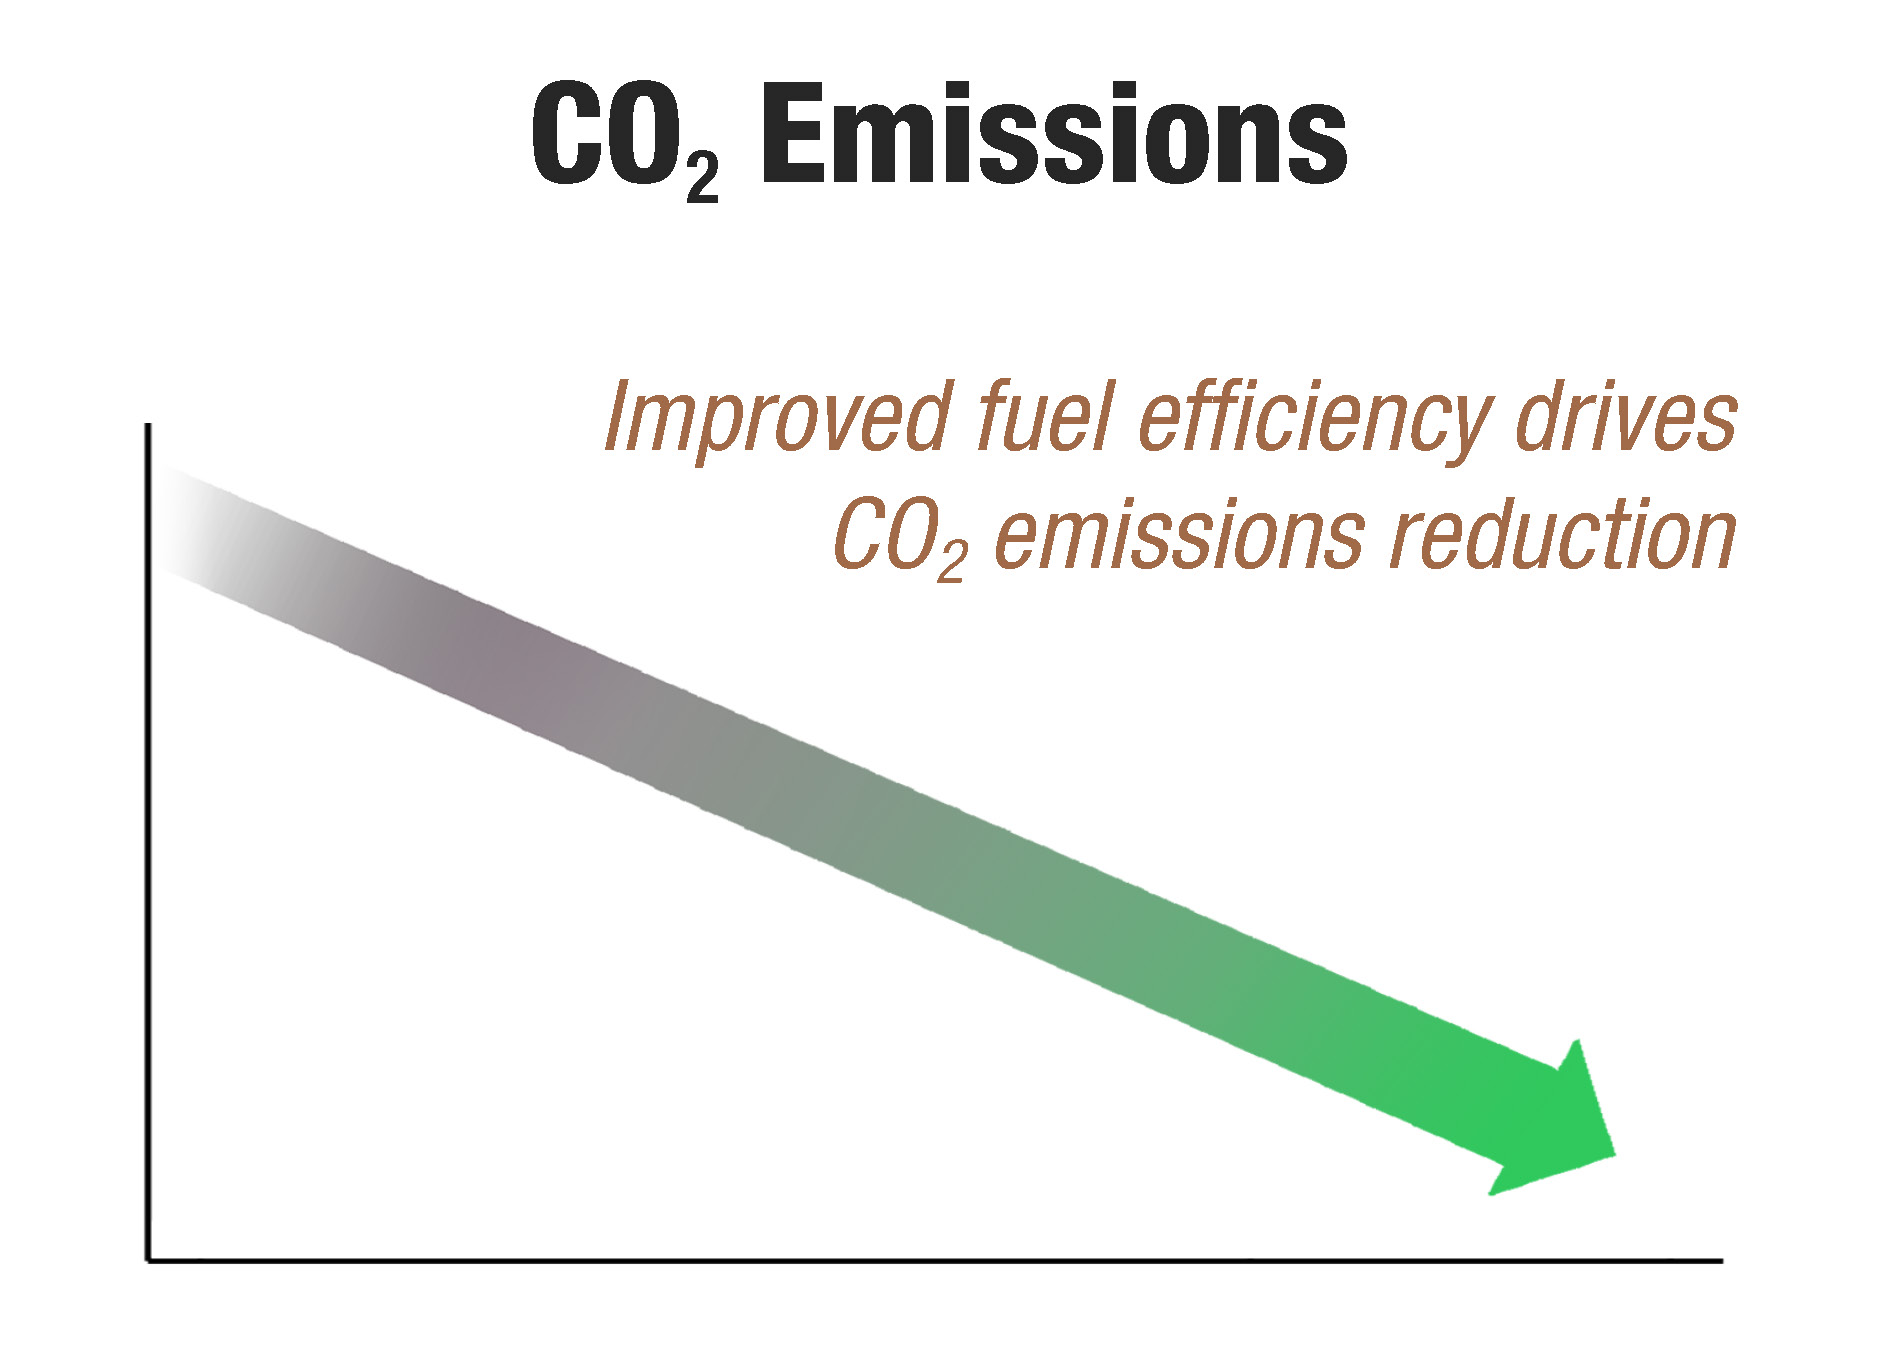 CO2_Emissions_graphic